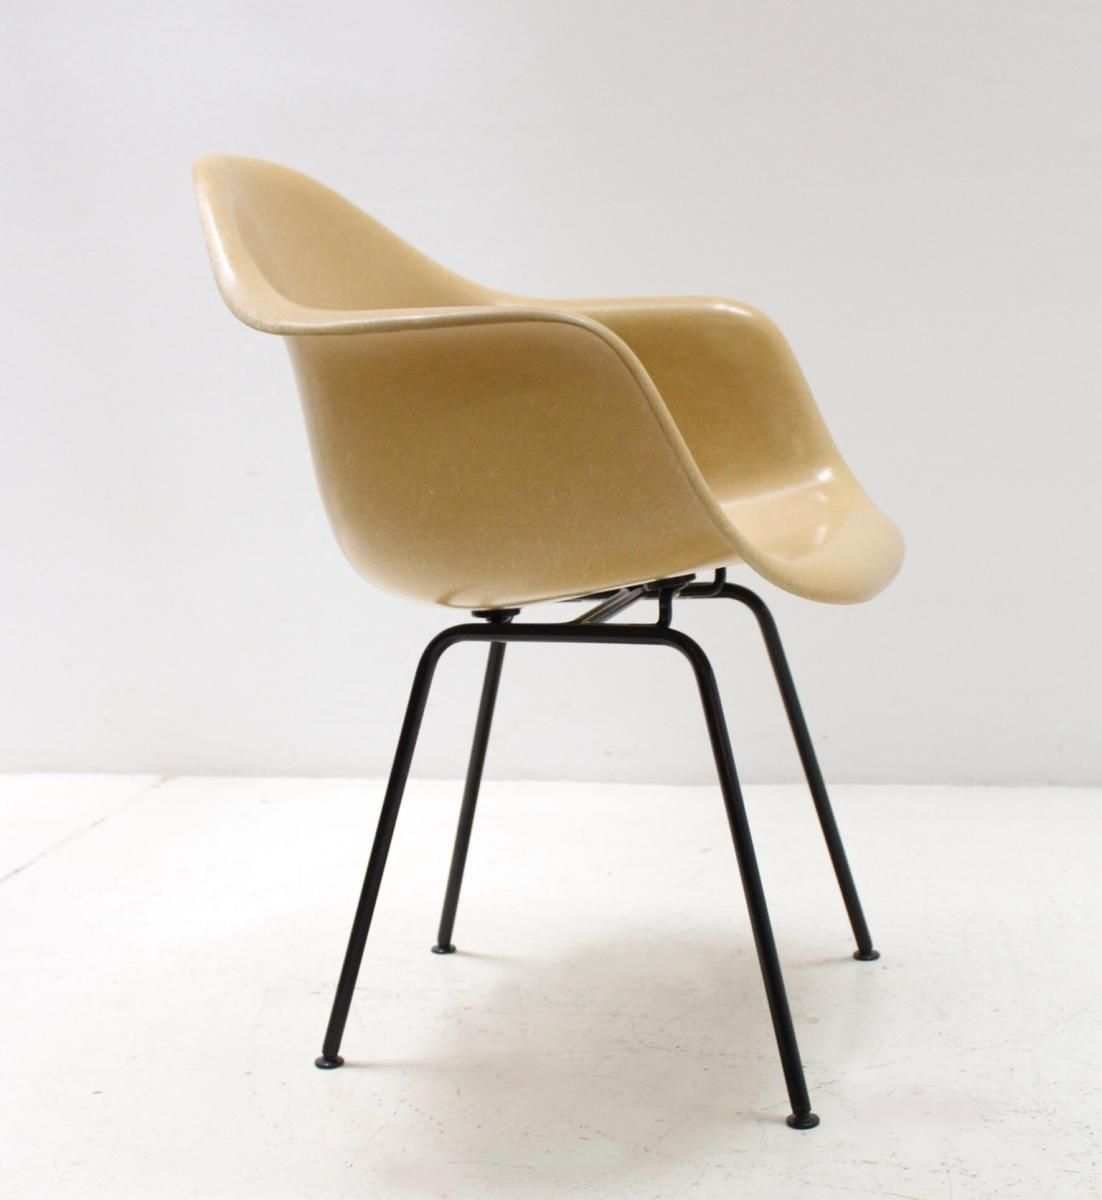 Mustard Fiberglass Armchair by Charles & Ray Eames for